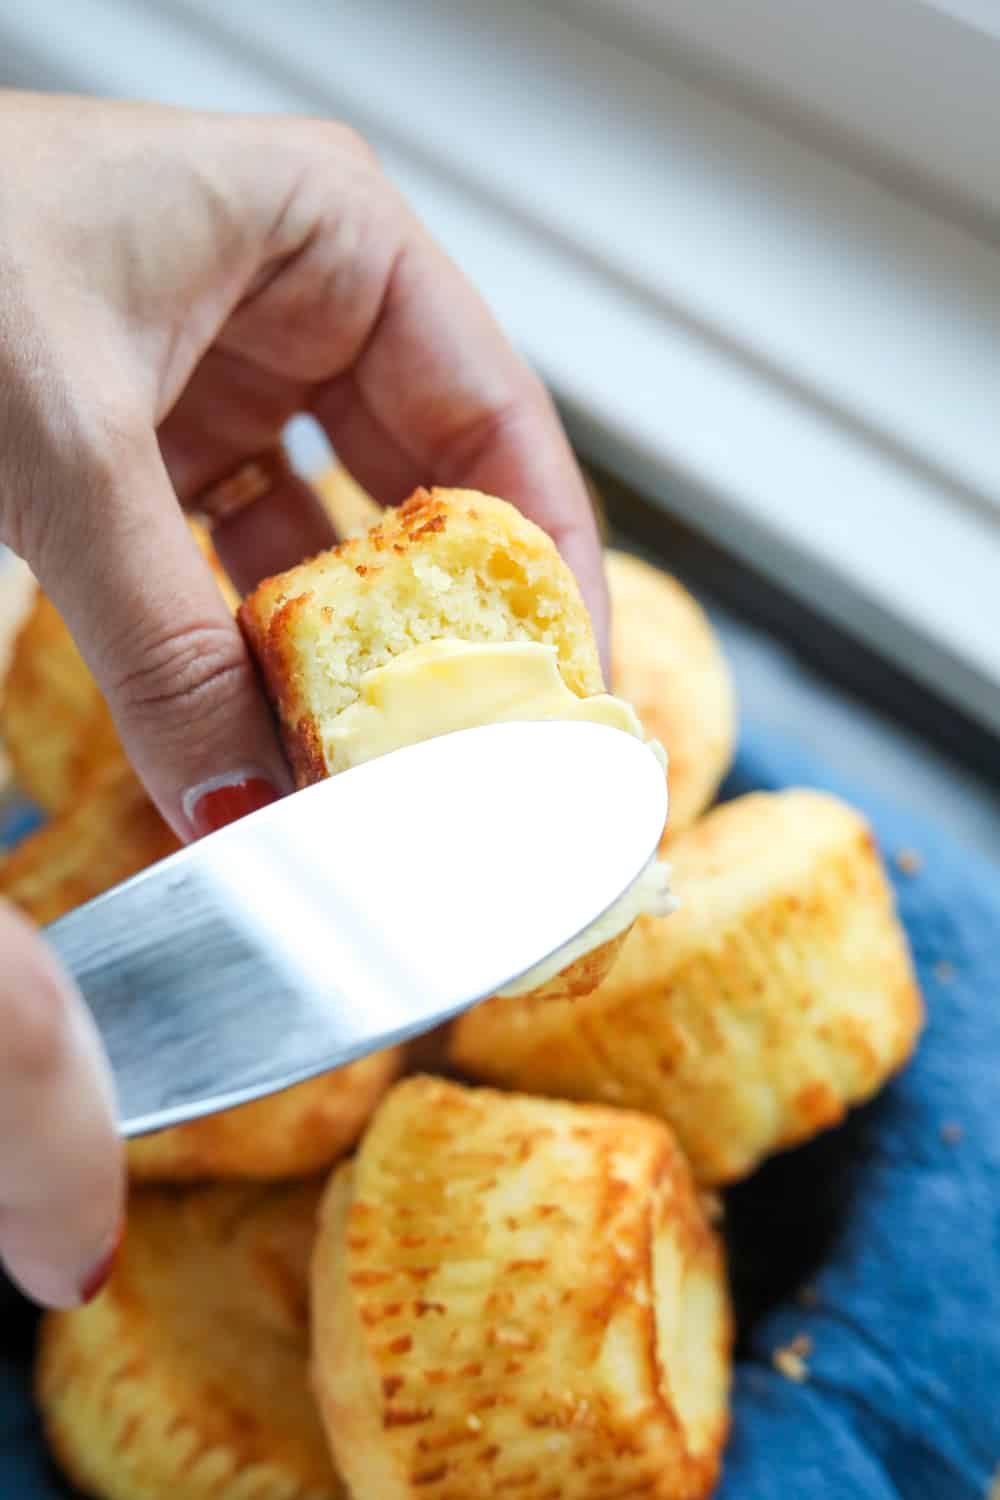 A hand holding a biscuit with a bite taken out of it and the other hand is spreading butter on it with a butter knife.